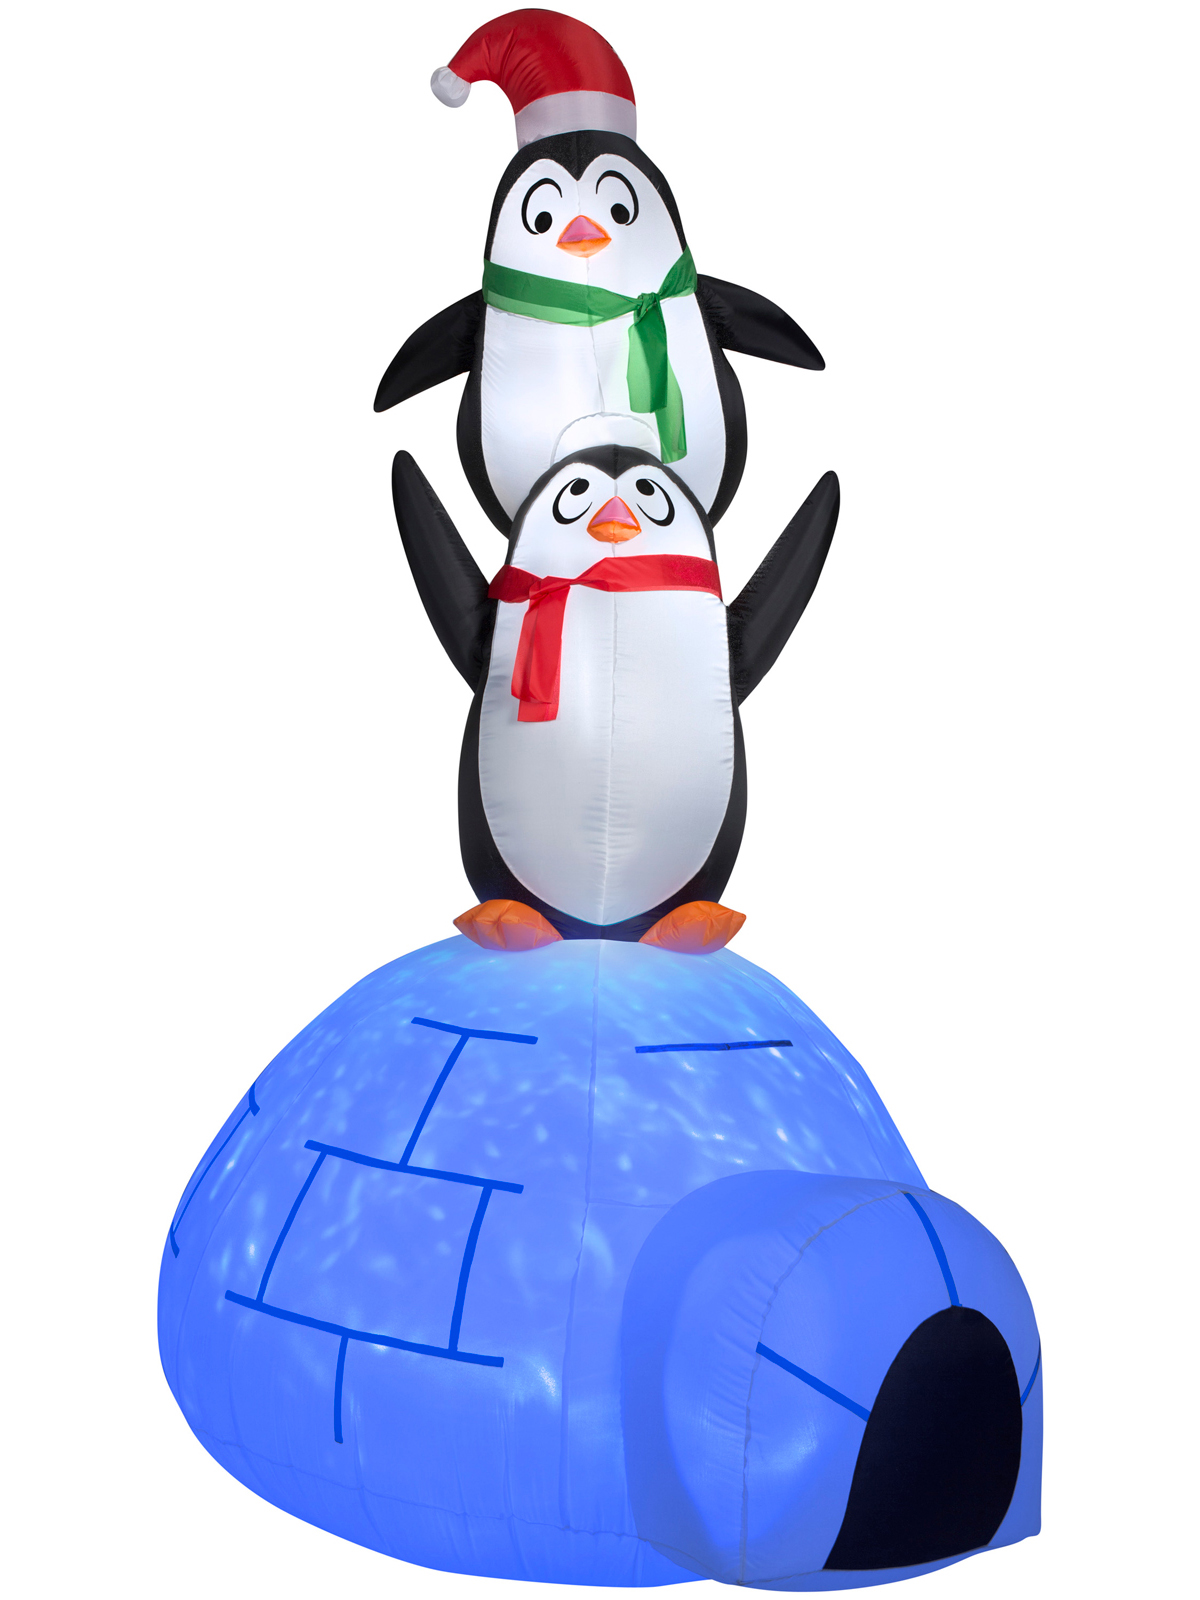 Projection Airblown Kaleidoscope - Igloo with Penguins 270170